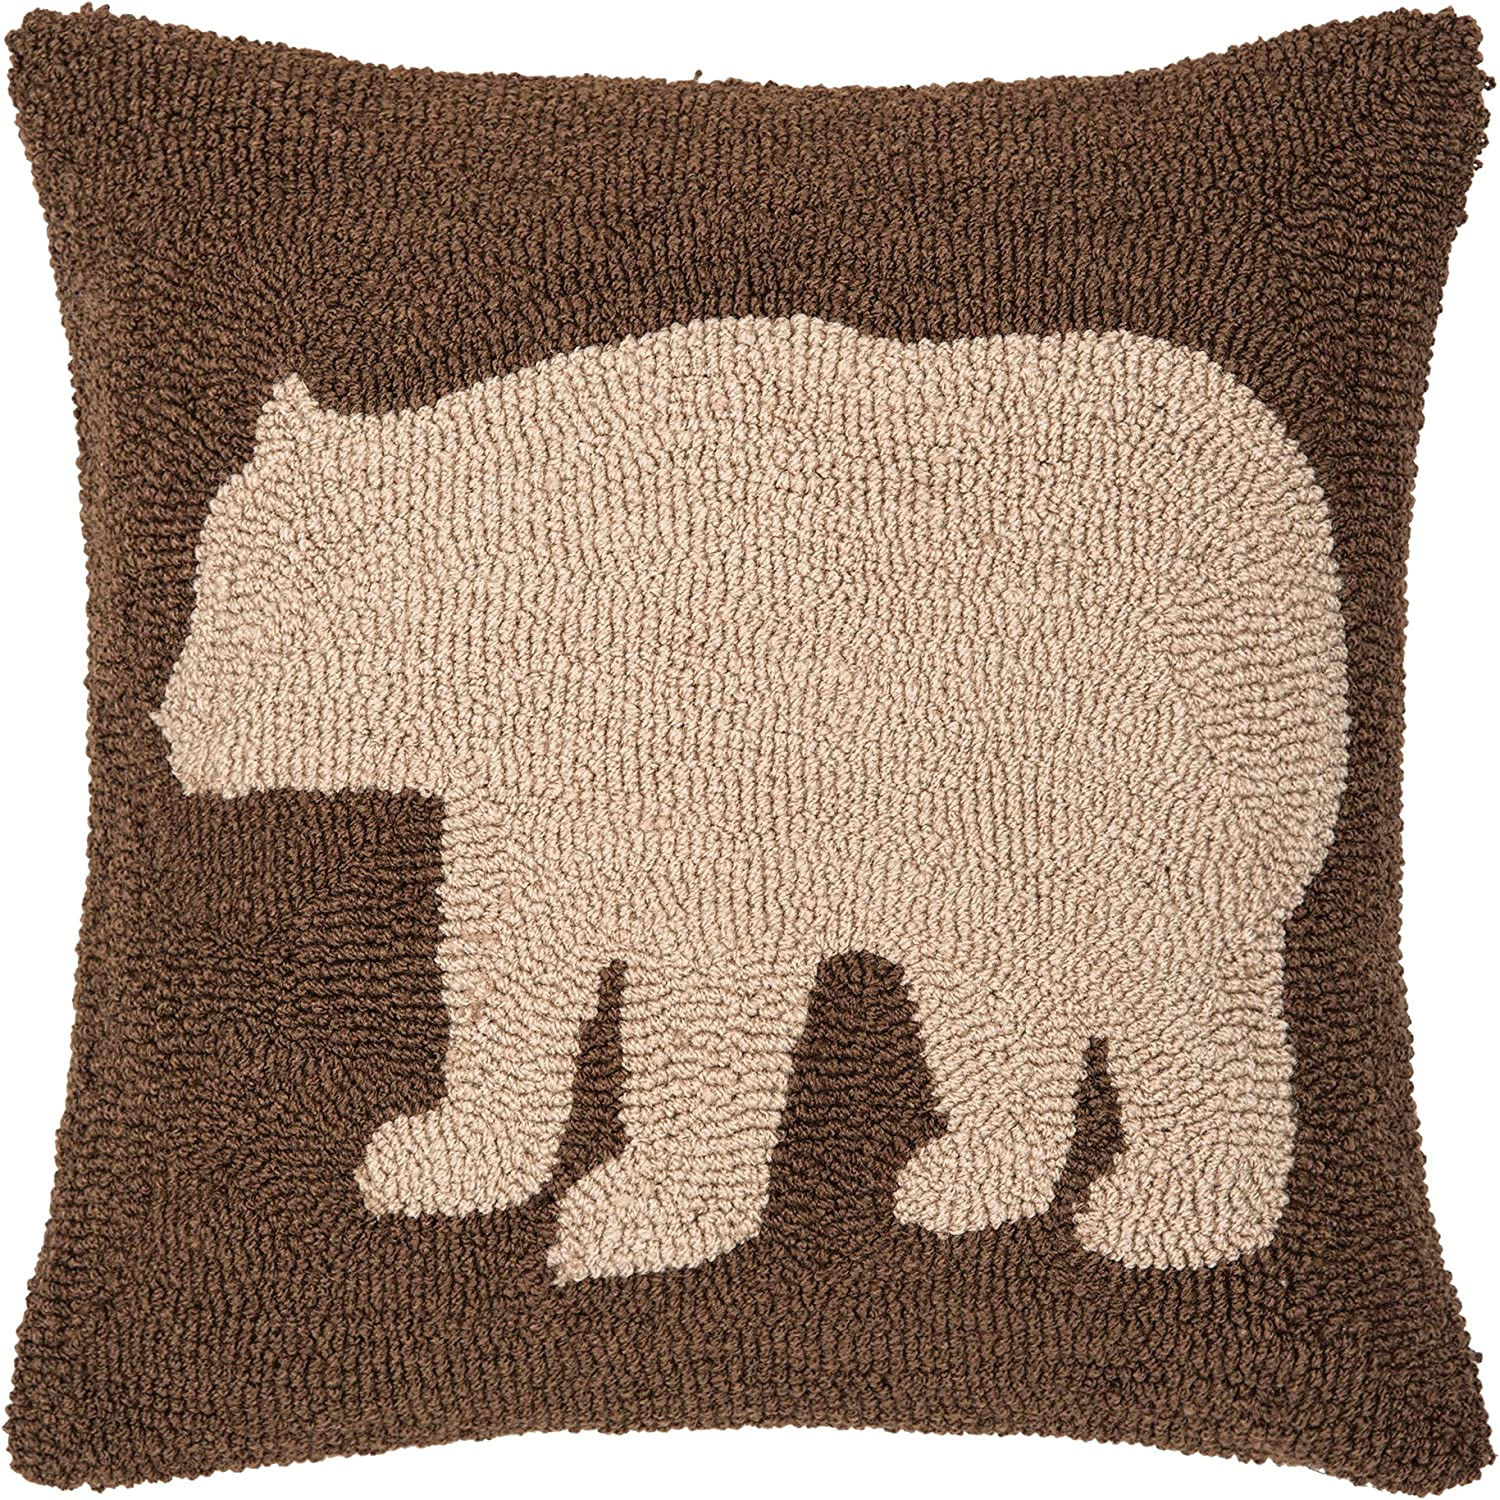 CF Home Bear Hooked Pillow x Brown 18 New Shipping Free Seasonal Wrap Introduction